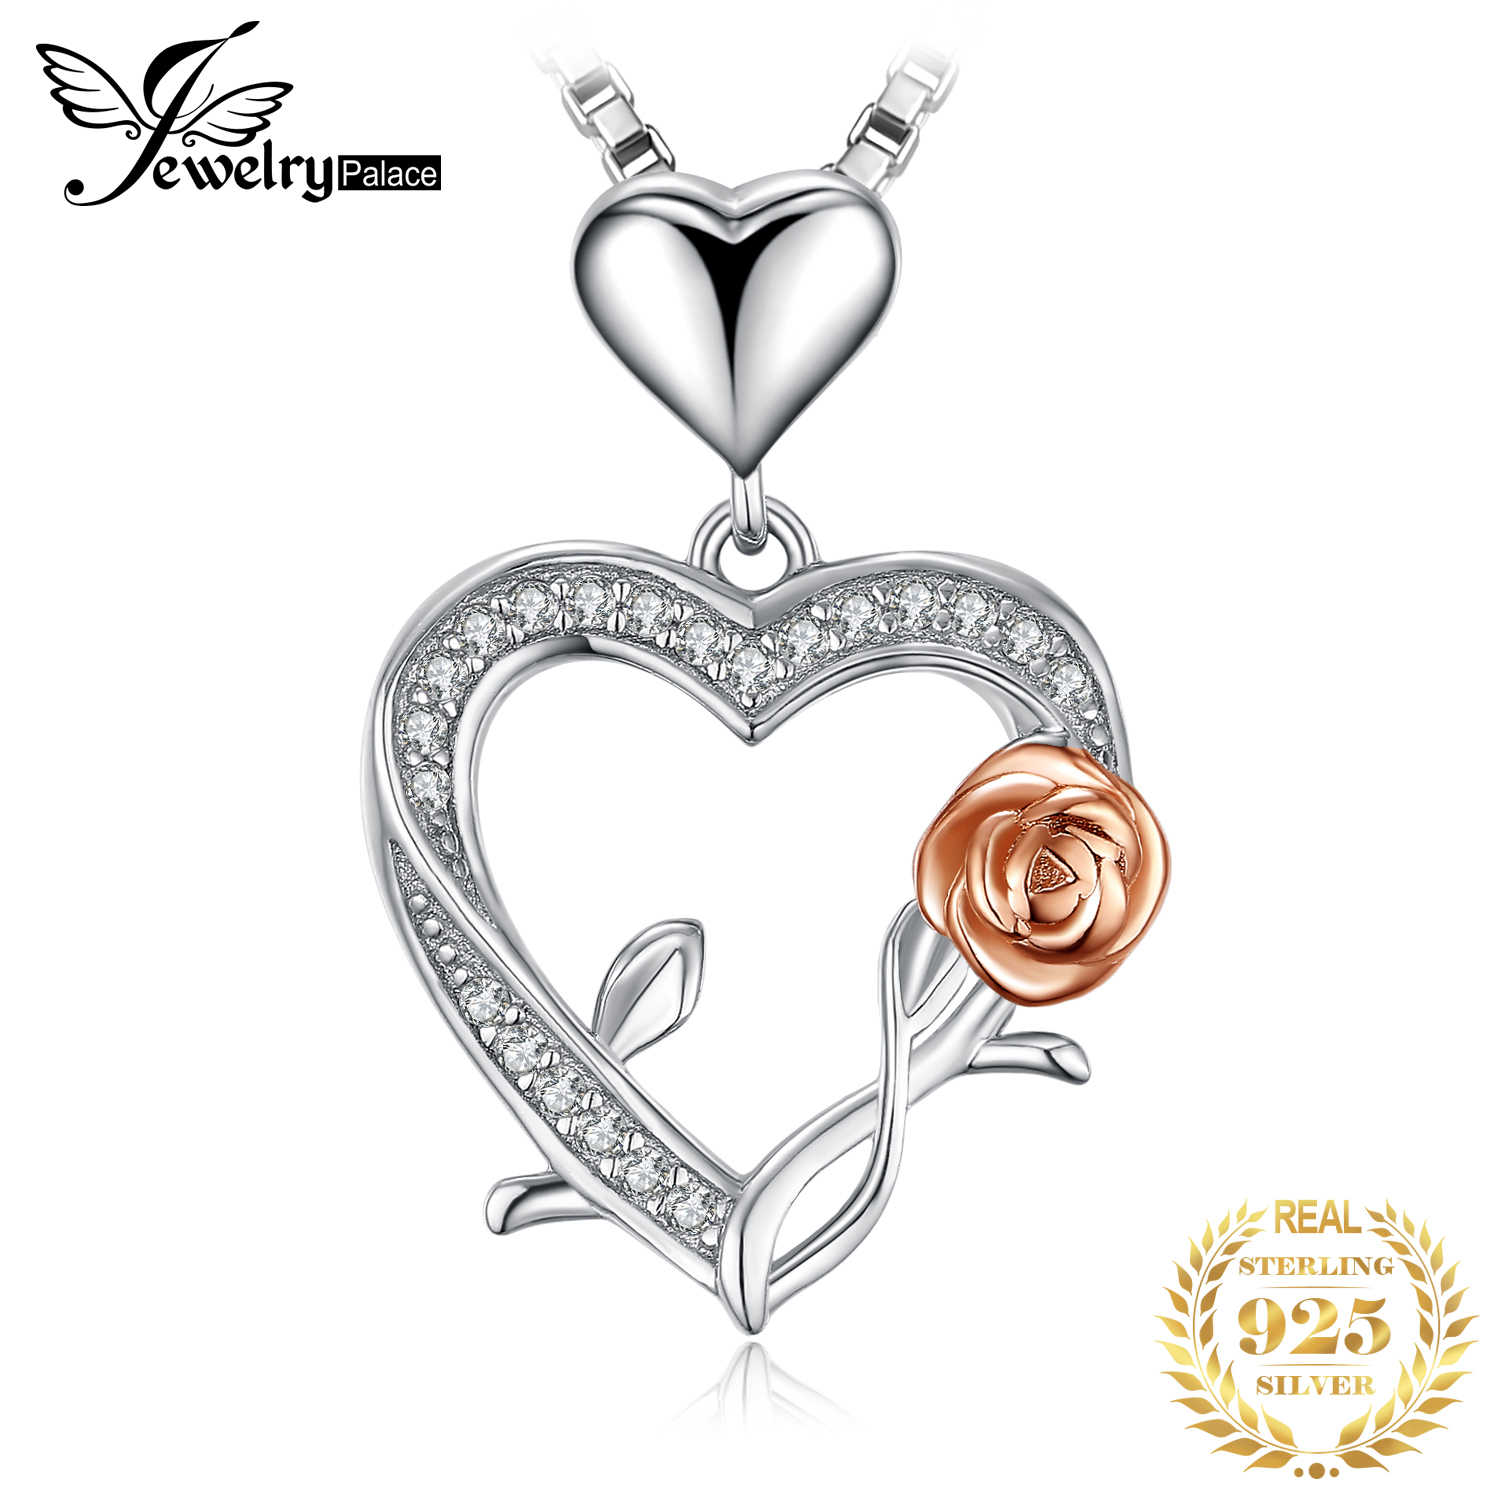 JPalace Heart Rose Silver Pendant Necklace 925 Sterling Silver Choker Statement Necklace Women Silver 925 Jewelry Without Chain